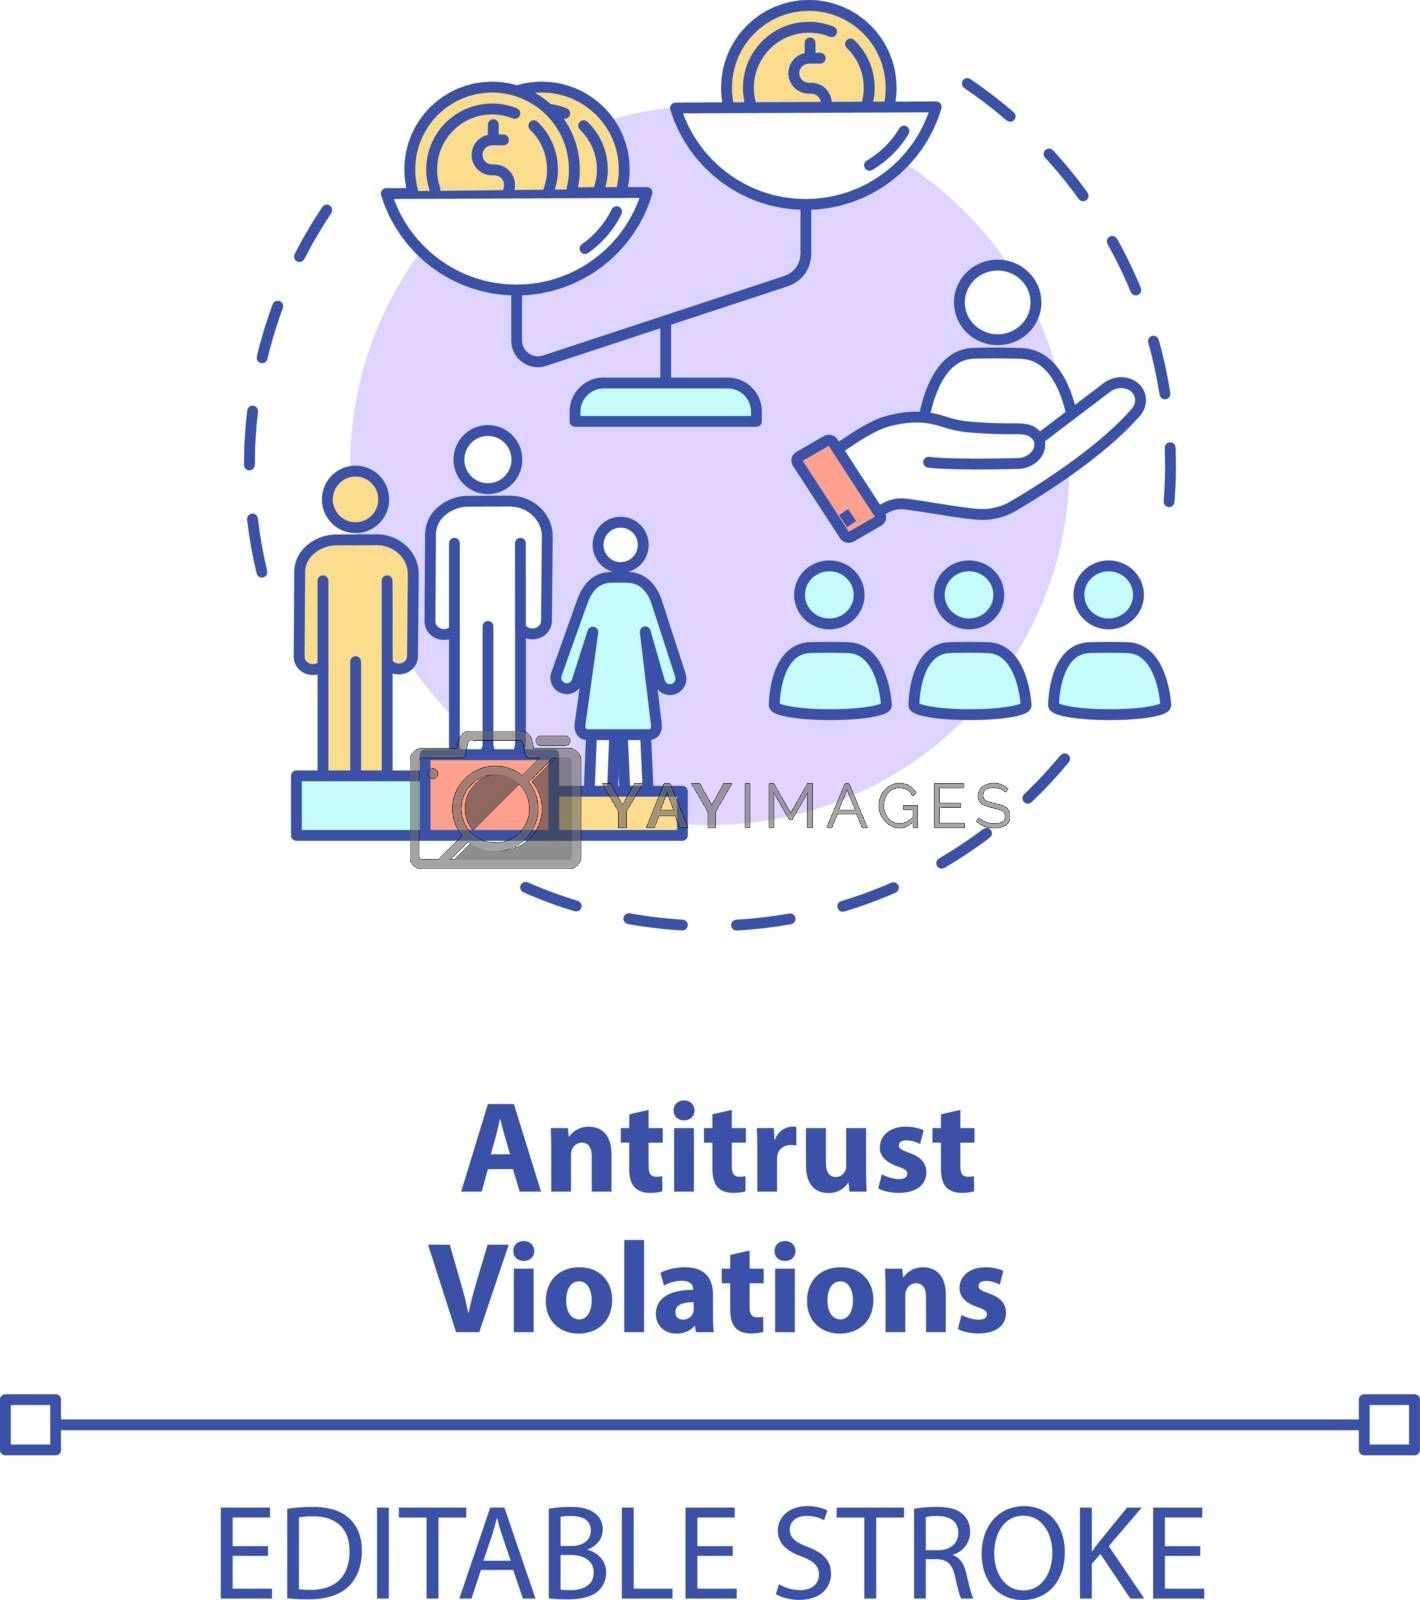 Antitrust violations concept icon by bsd